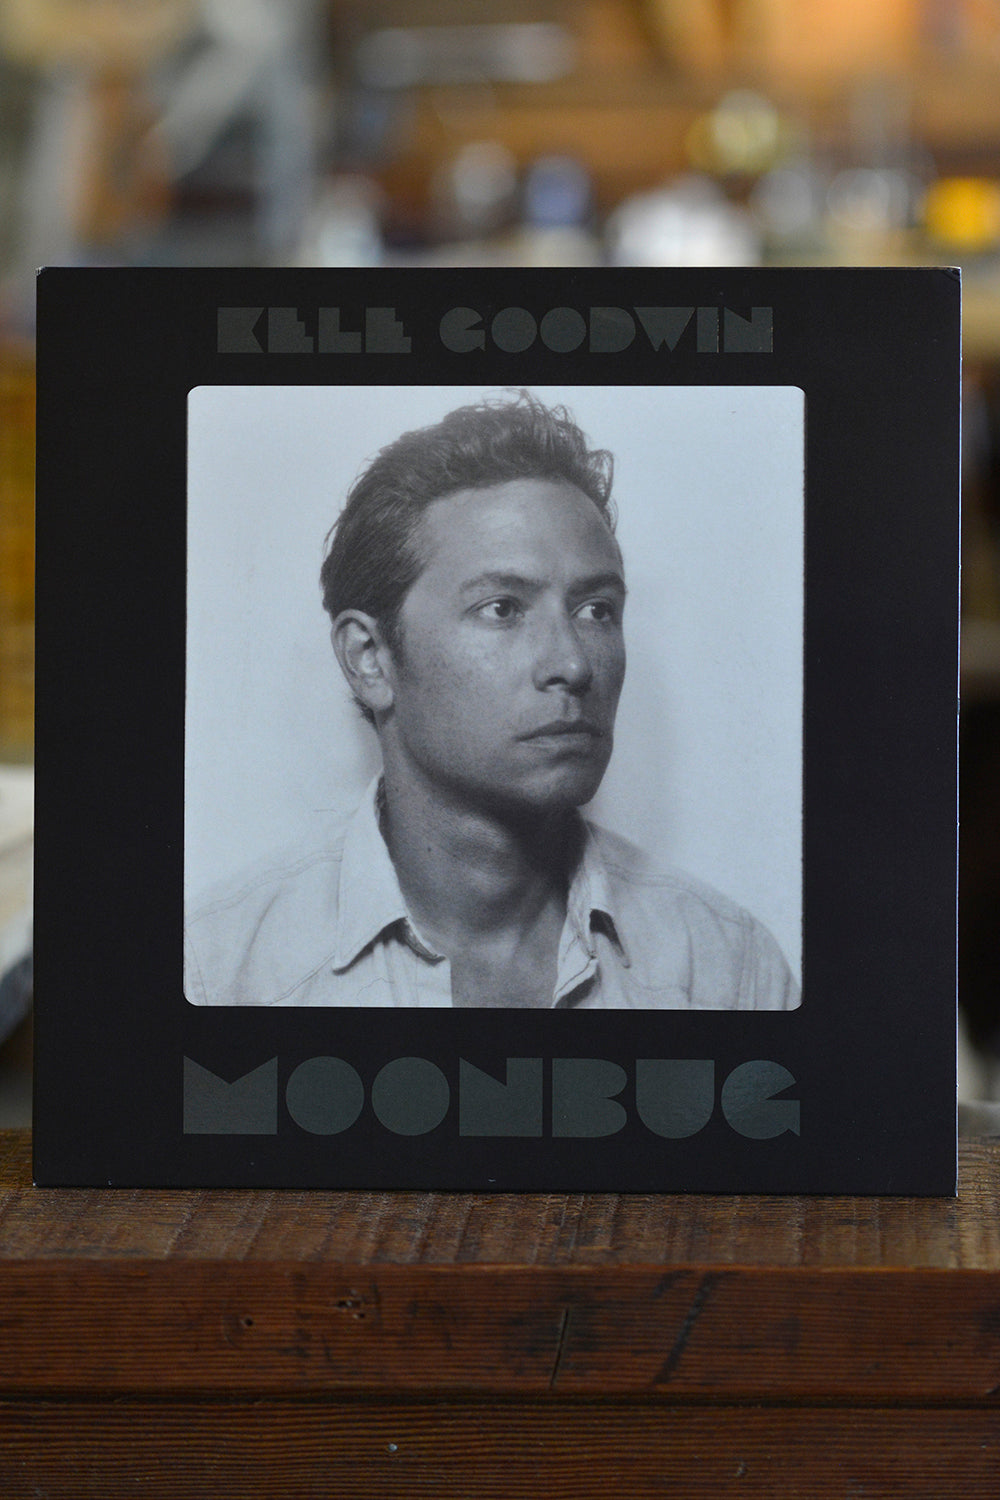 Kele Goodwin - Moonbug LP